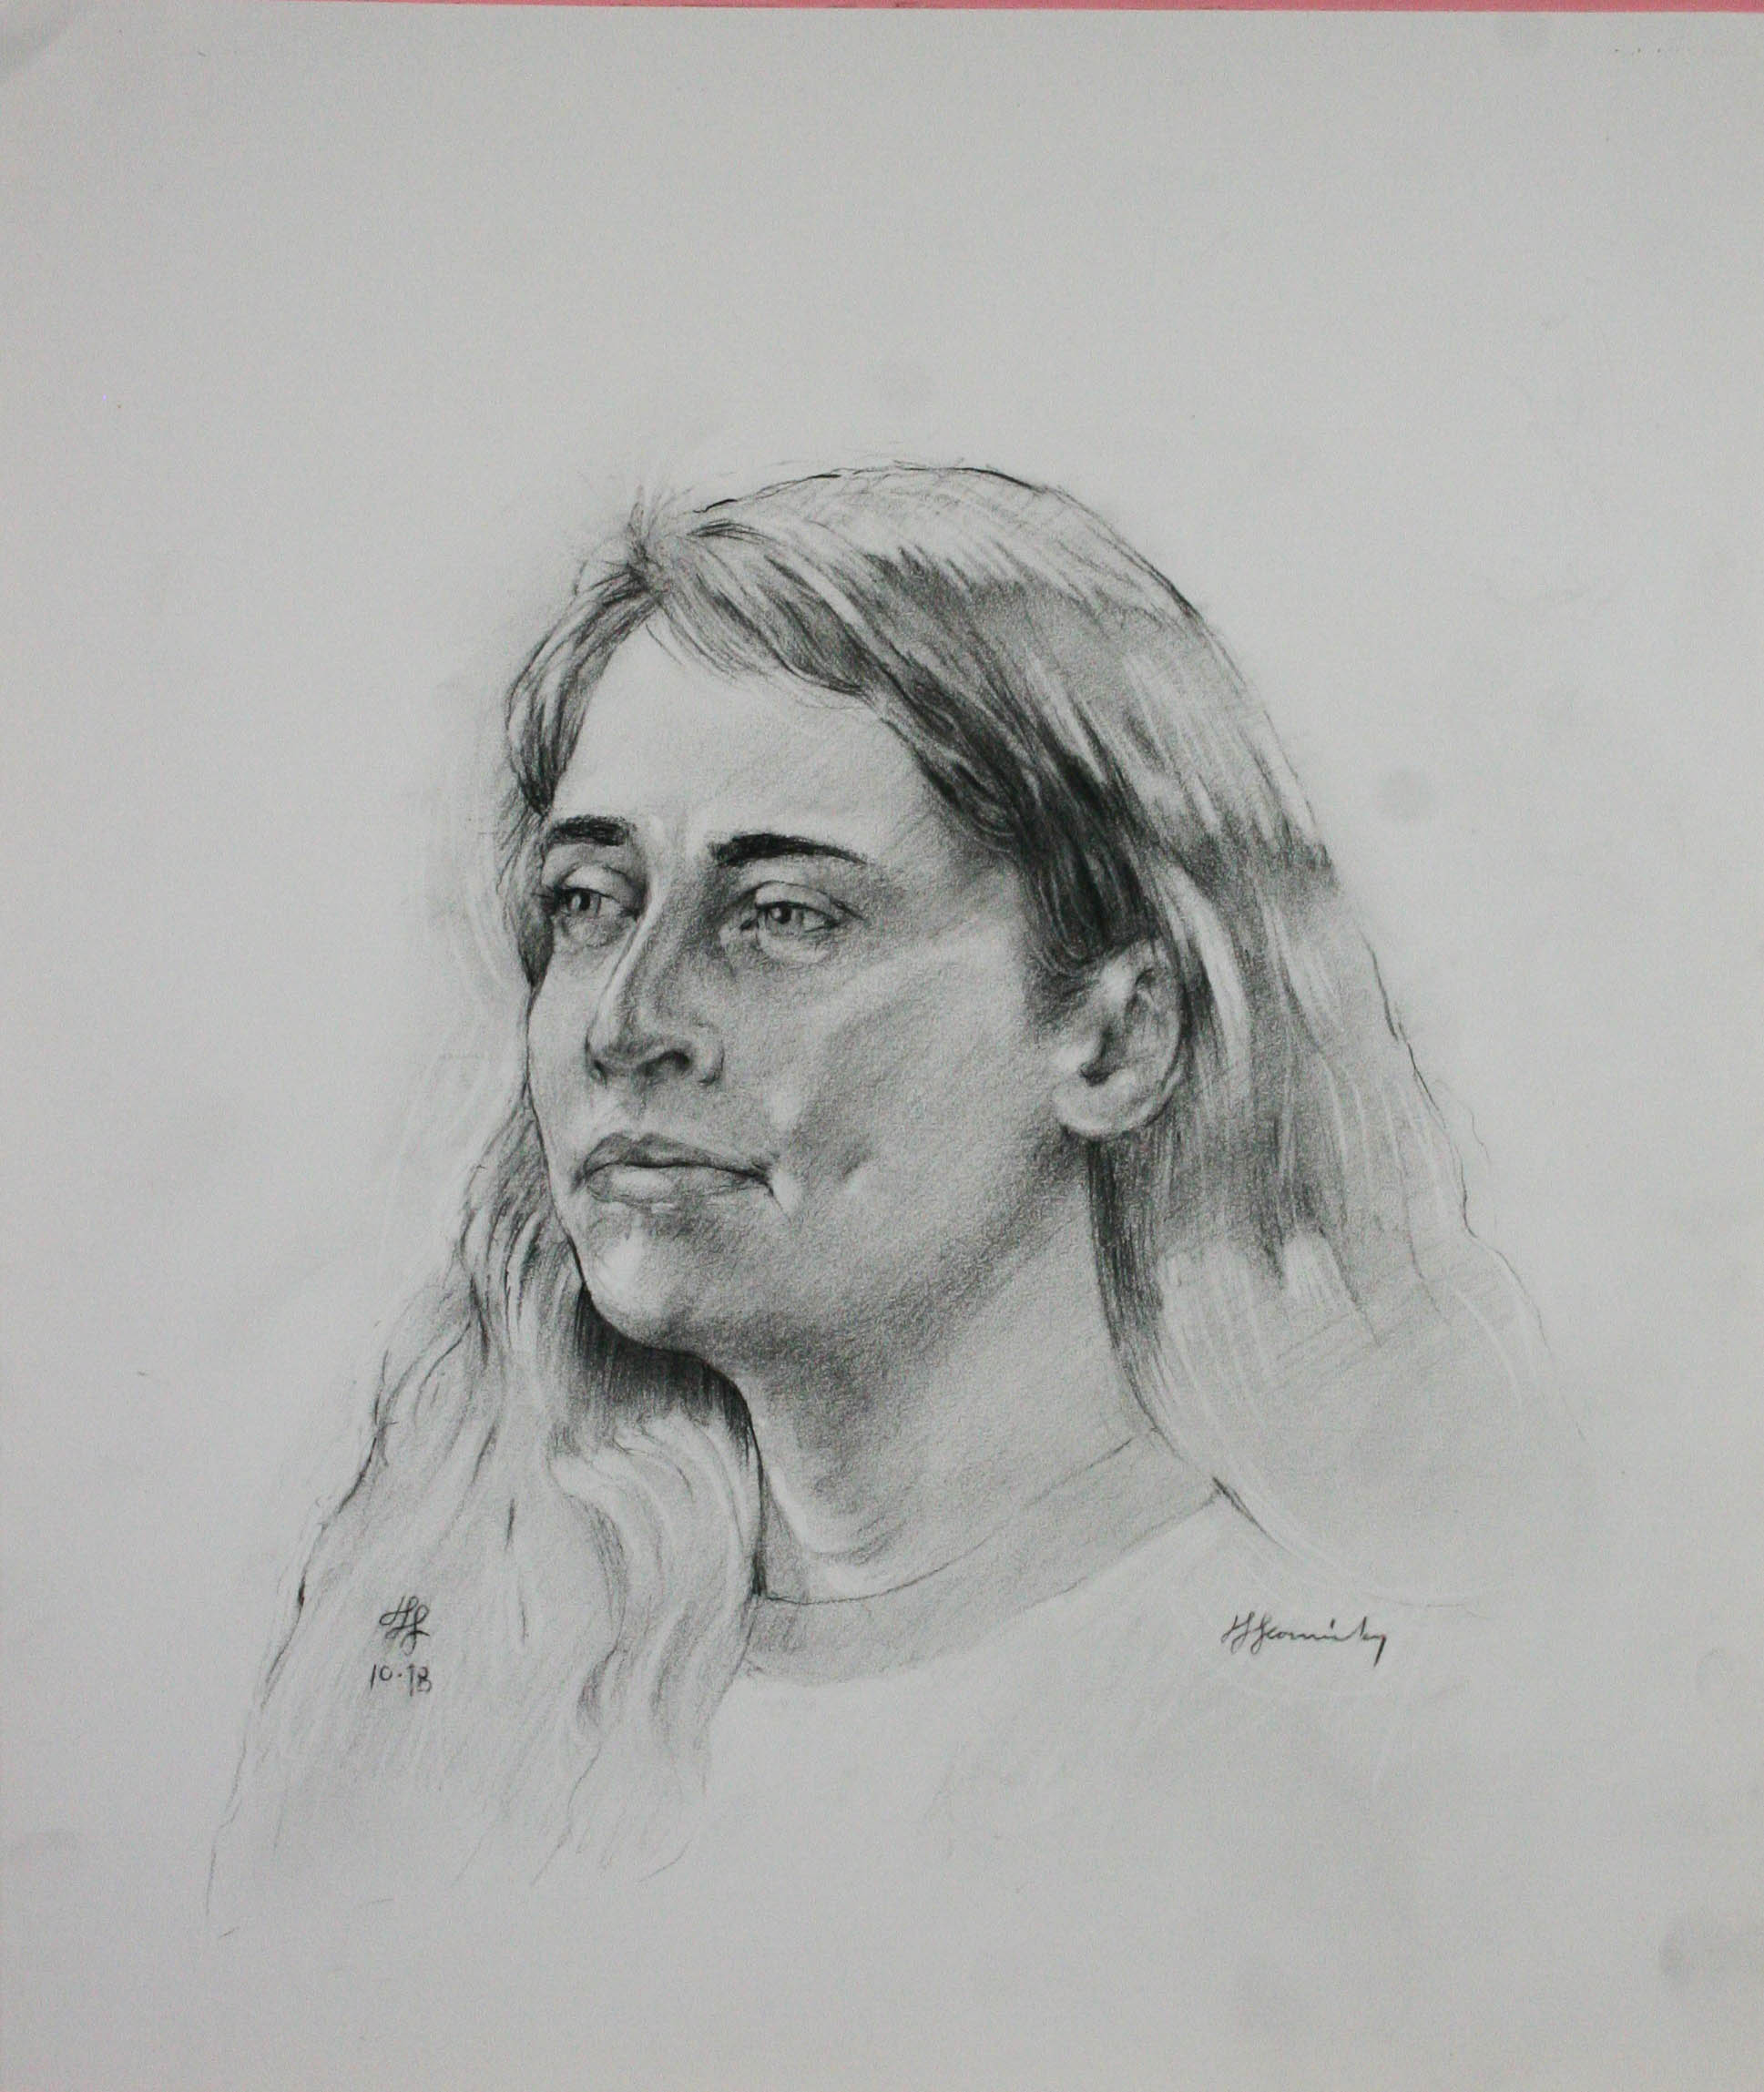 John Scavnicky did this charcoal drawing.